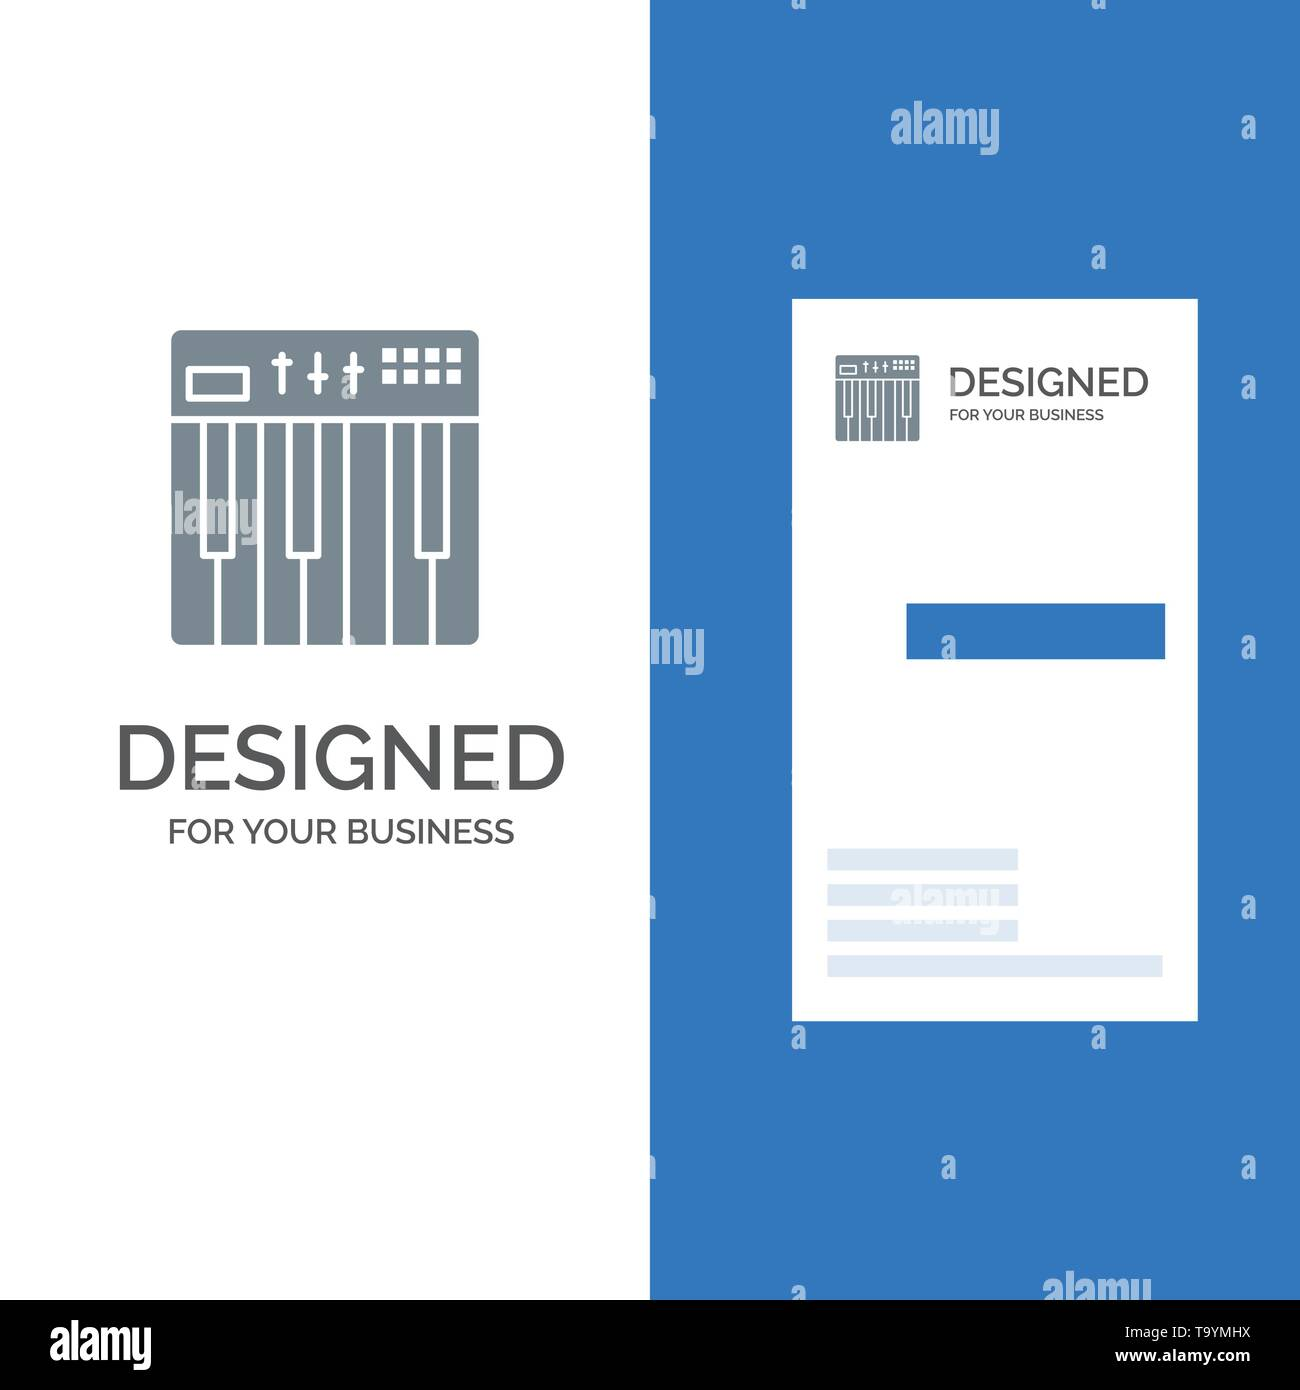 Controller, Hardware, Keyboard, Midi, Music Grey Logo Design and Business Card Template - Stock Image